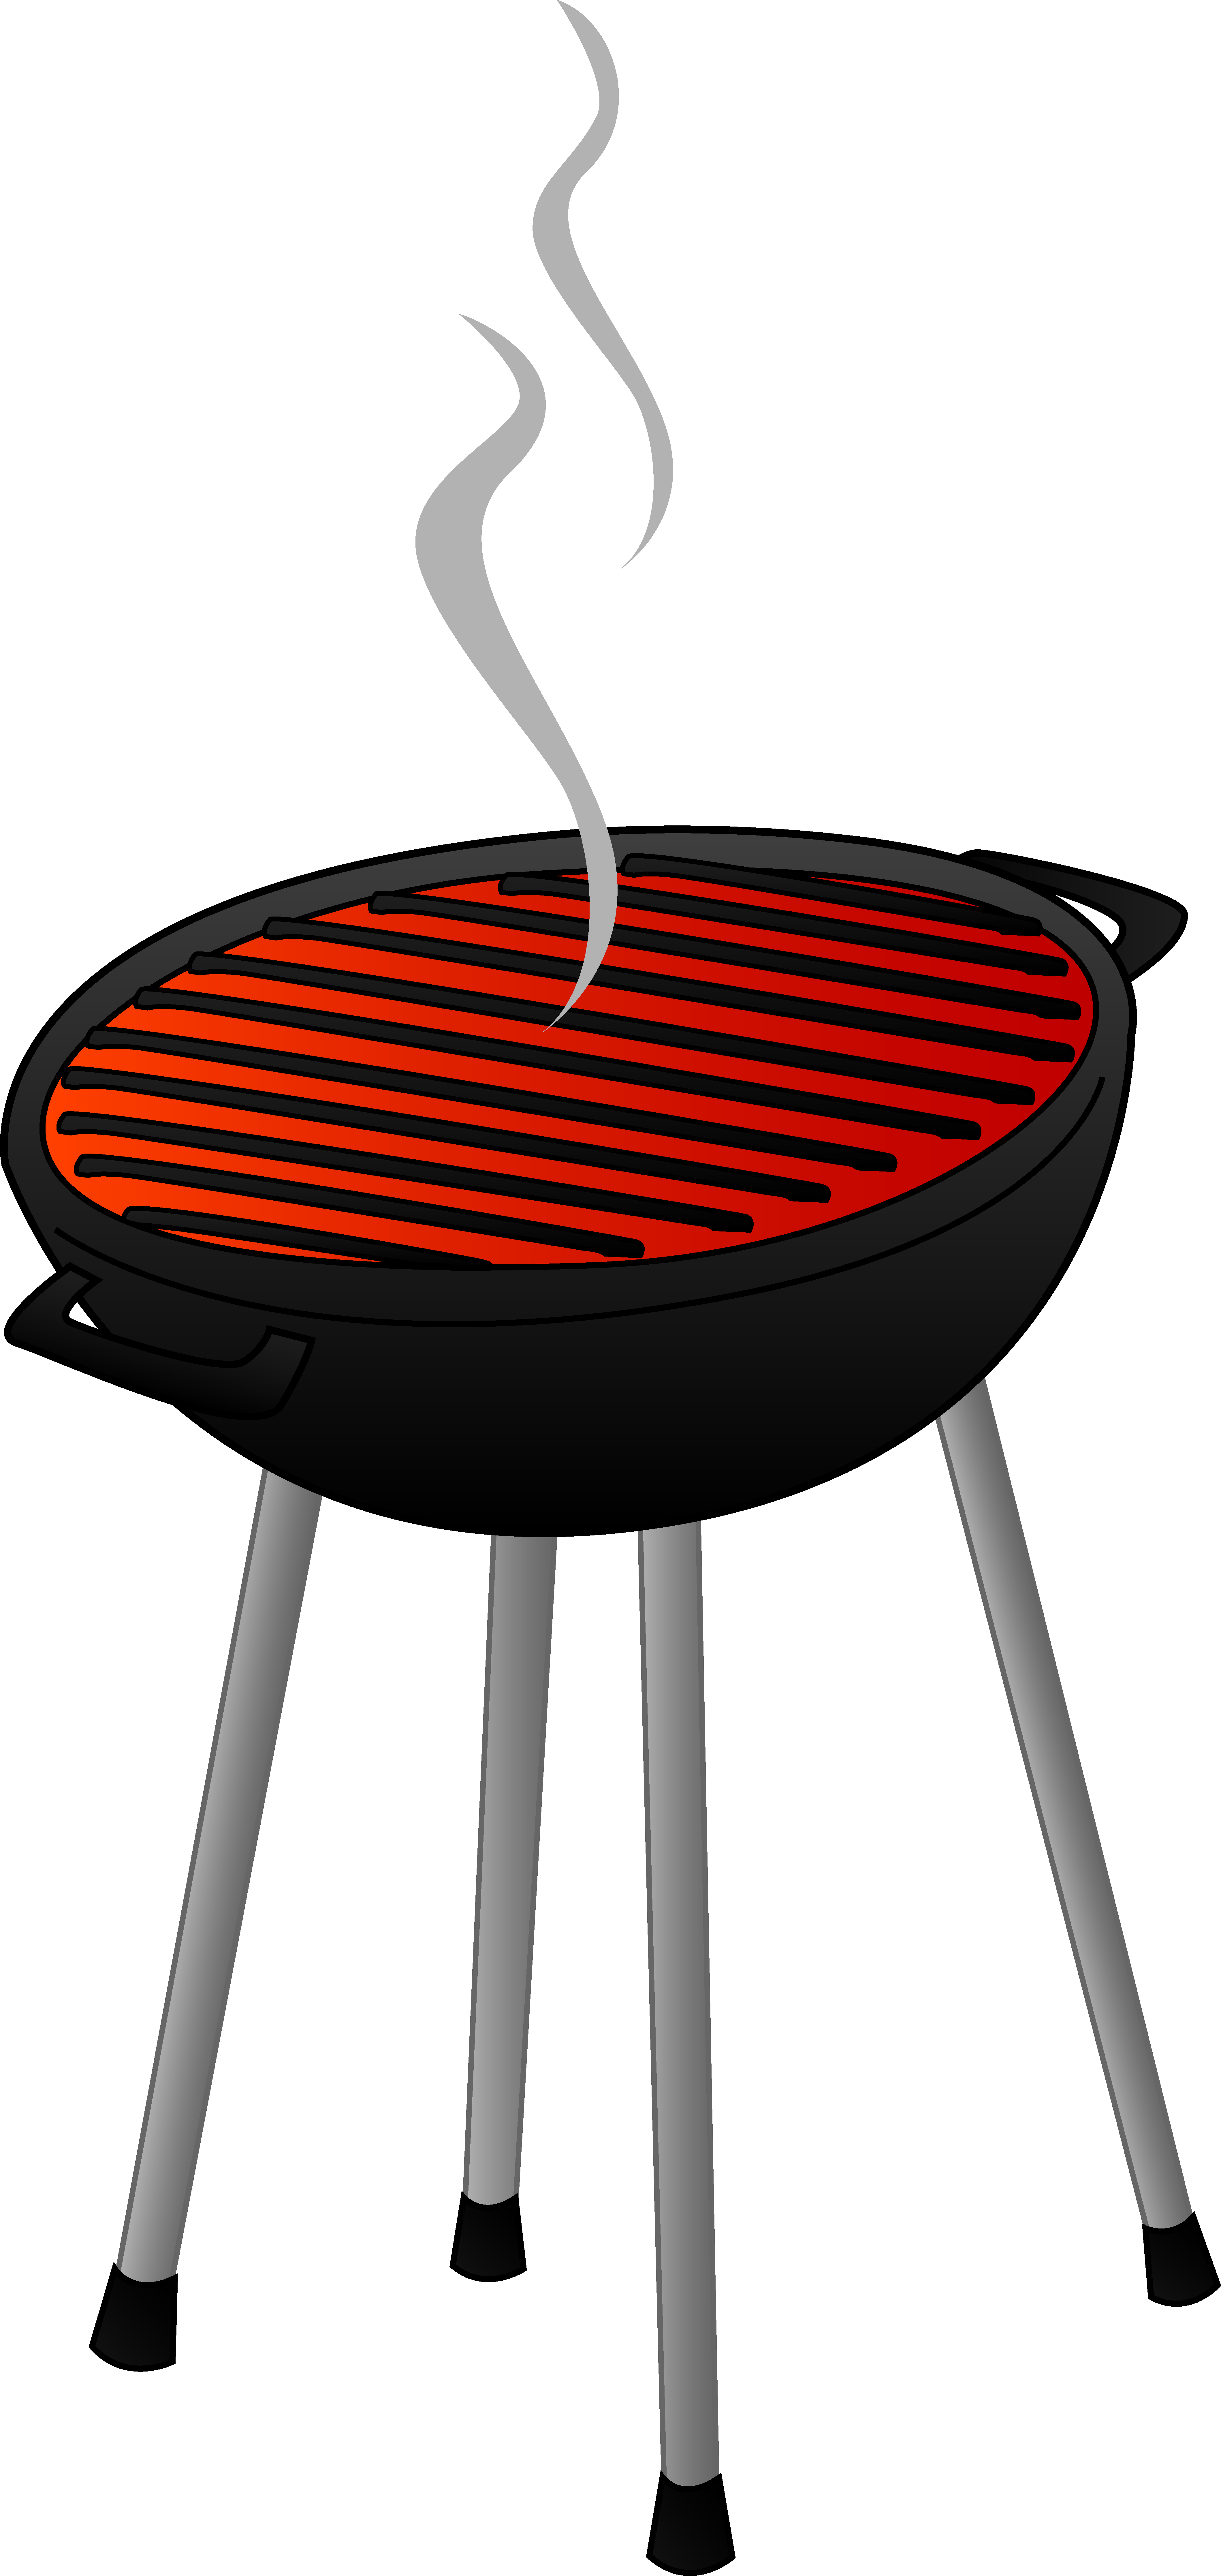 Clip Art Bbq Grill Clipart bbq grill with fire clipart panda free images